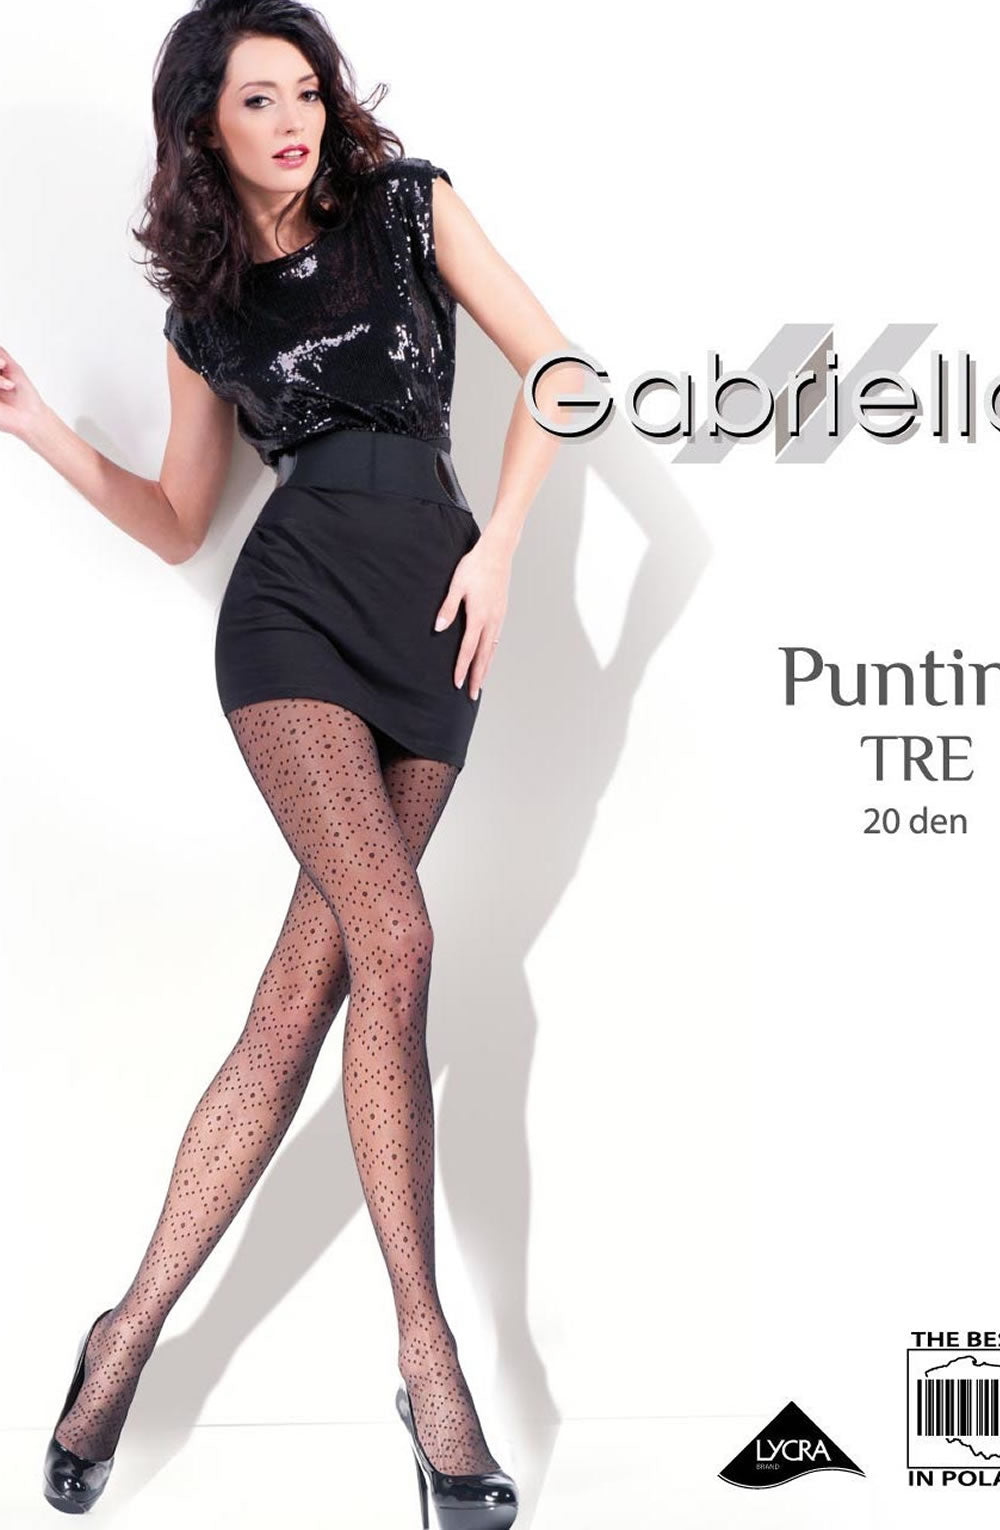 Gabriella Fantasia Putina Tre Tights